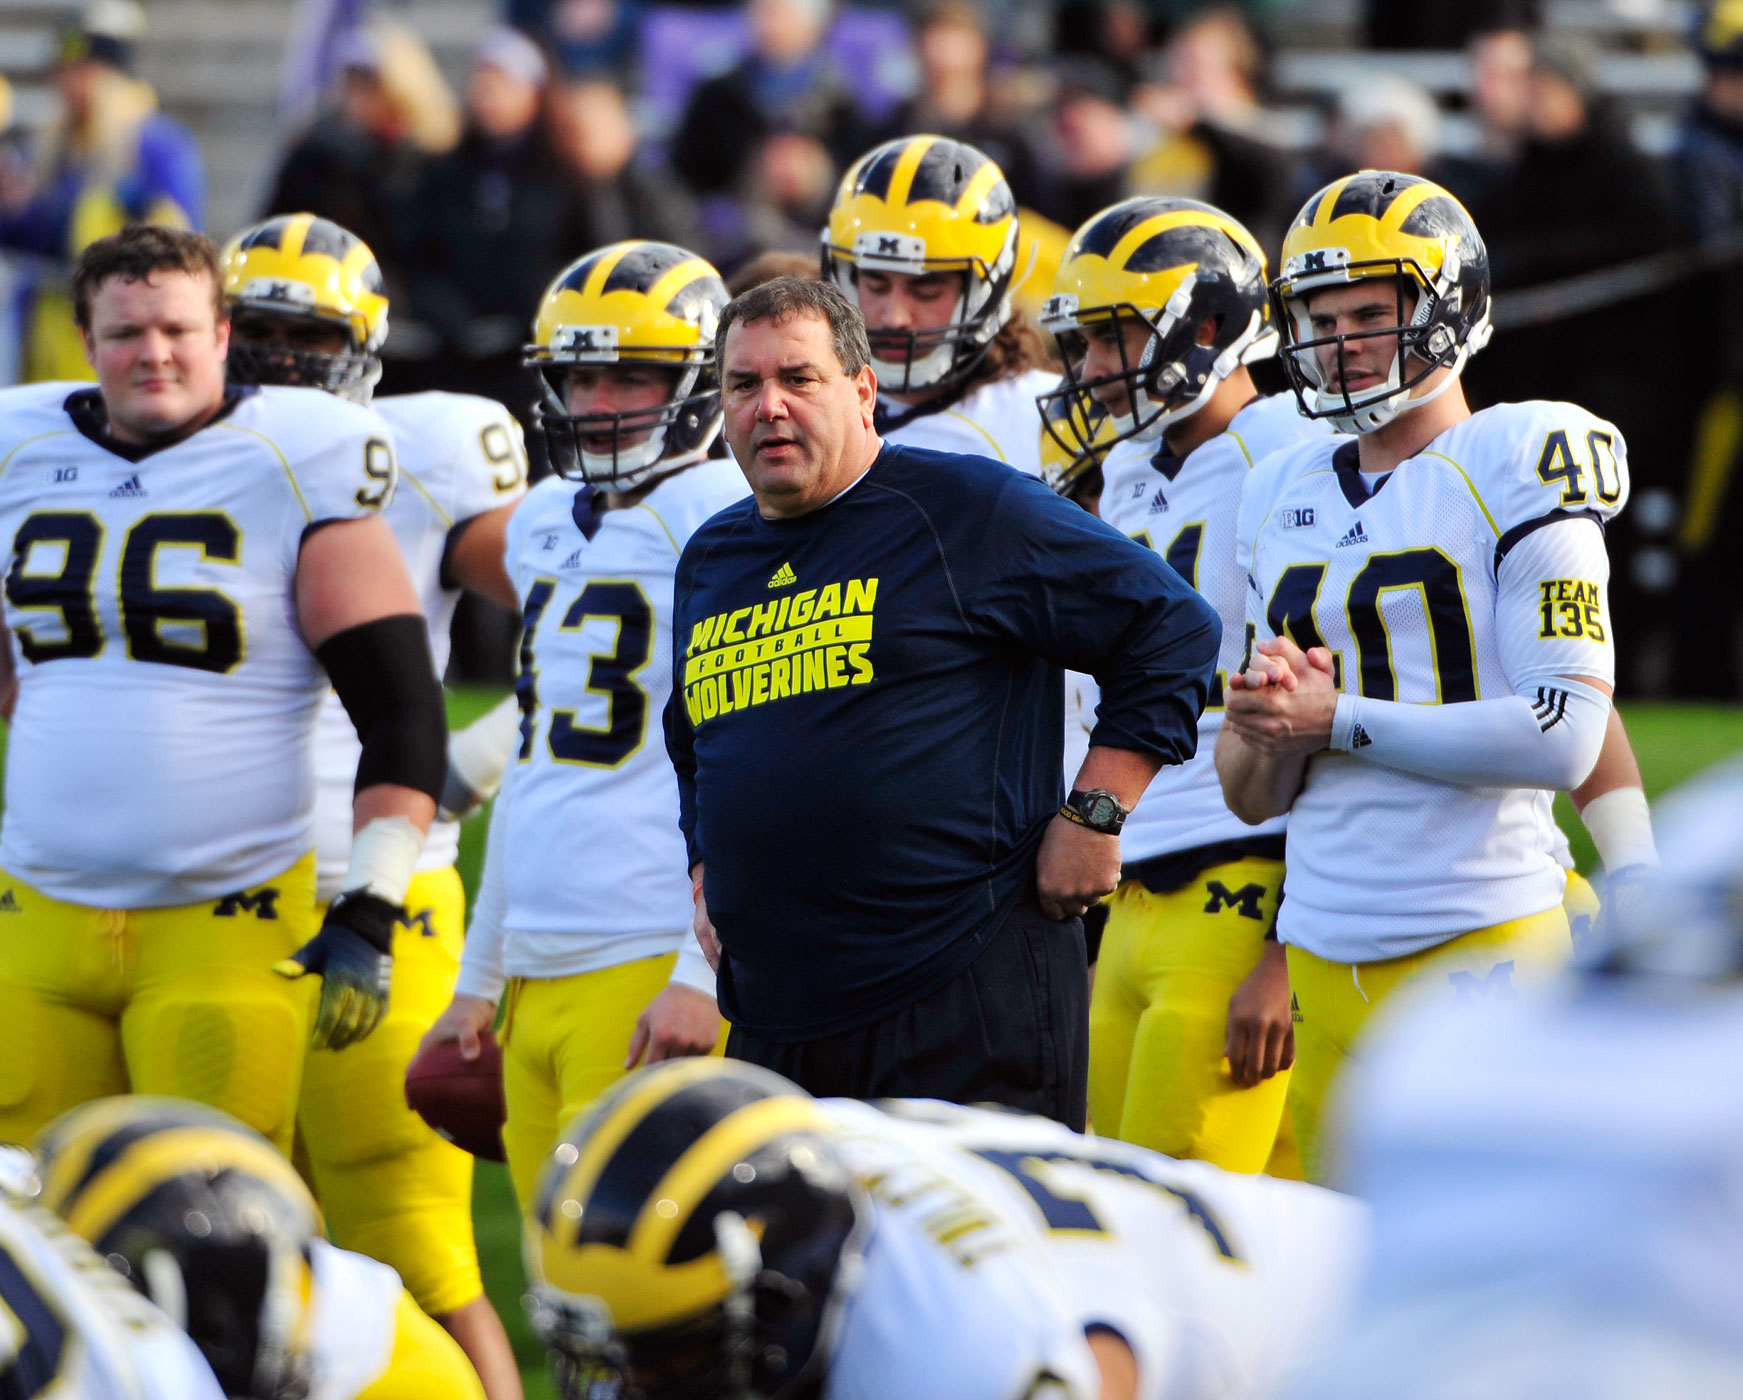 Head coach Brady Hoke of the Michigan Wolverines watches his team warm up before a game against the Northwestern Wildcats on November 8, 2014 at Ryan Field in Evanston, Illinois.